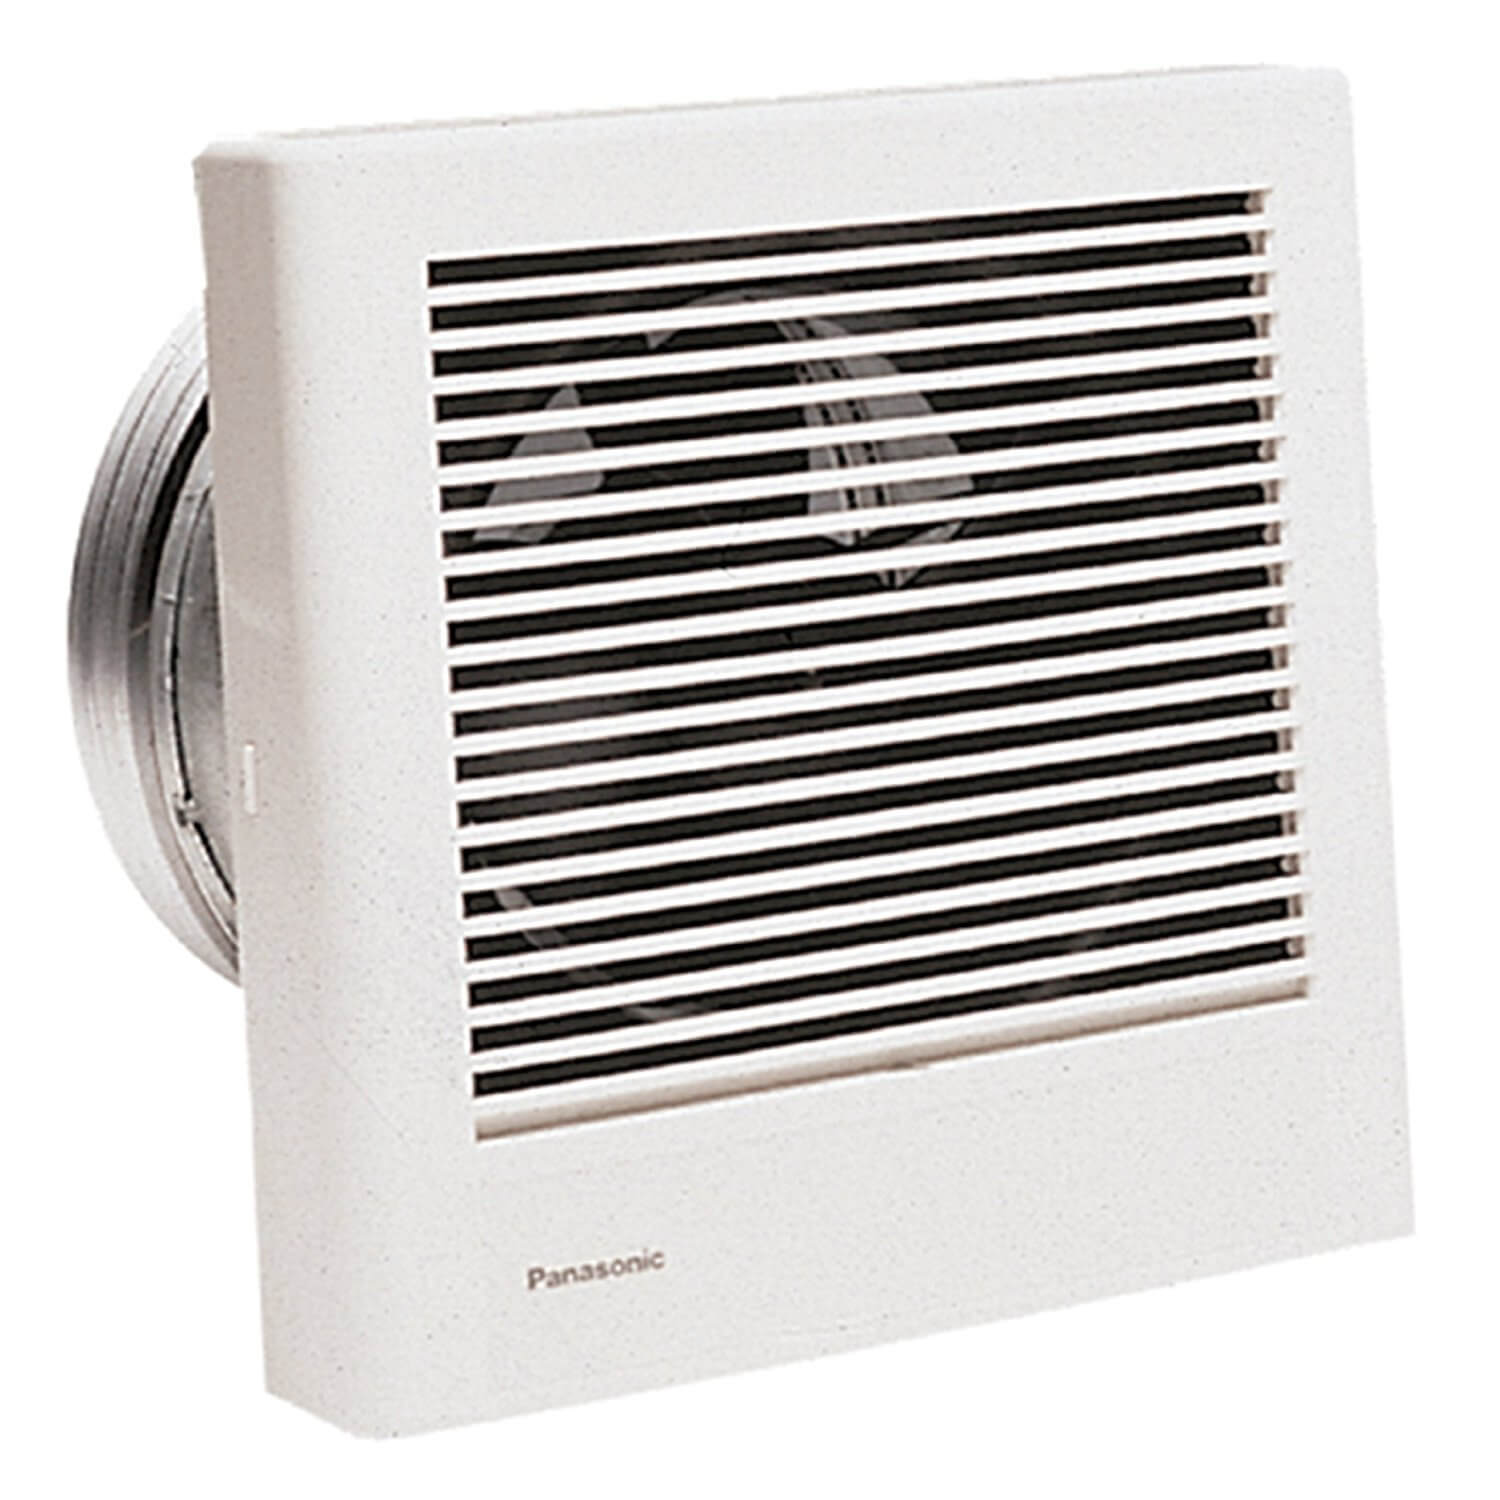 Bathroom Exhaust Fan Reviews. Panasonic Fv 08wq Cfm Wall Mounted Fan